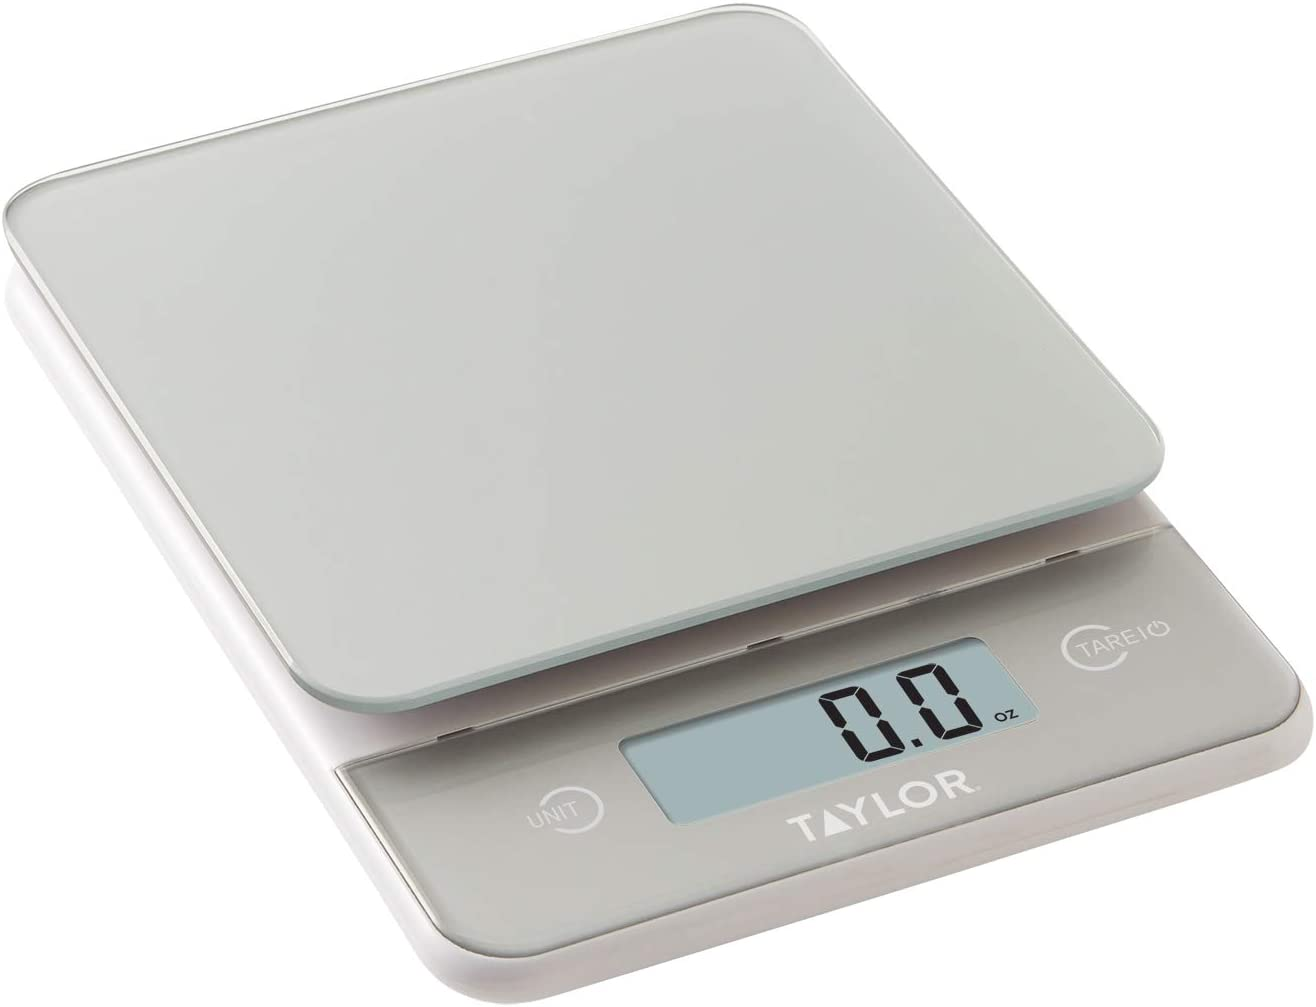 Taylor Precision Products Glass Top Food Scale with Touch Control Buttons, 11 lb Capacity, Silver